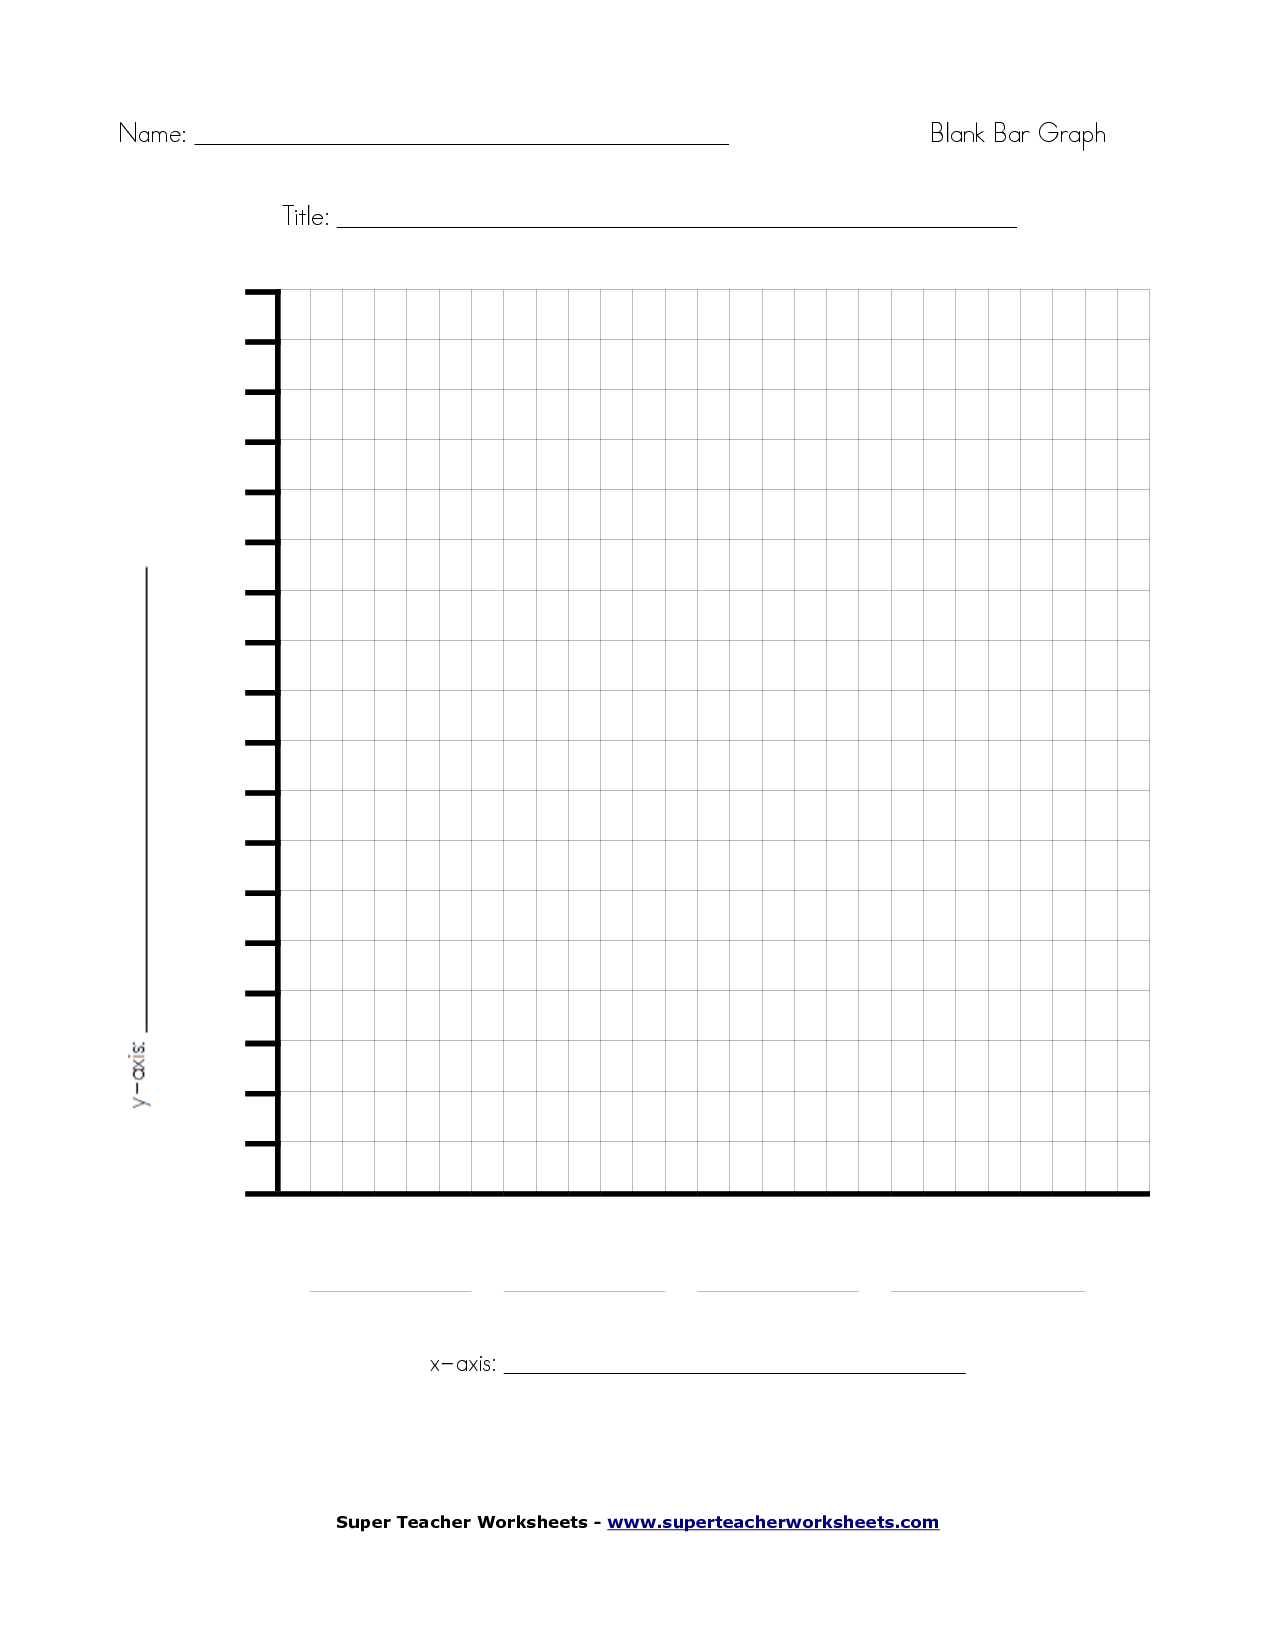 Worksheets Online Printable Bar Graph 1000 ideas about bar graph template on pinterest graphs graphing activities and classroom behavior management